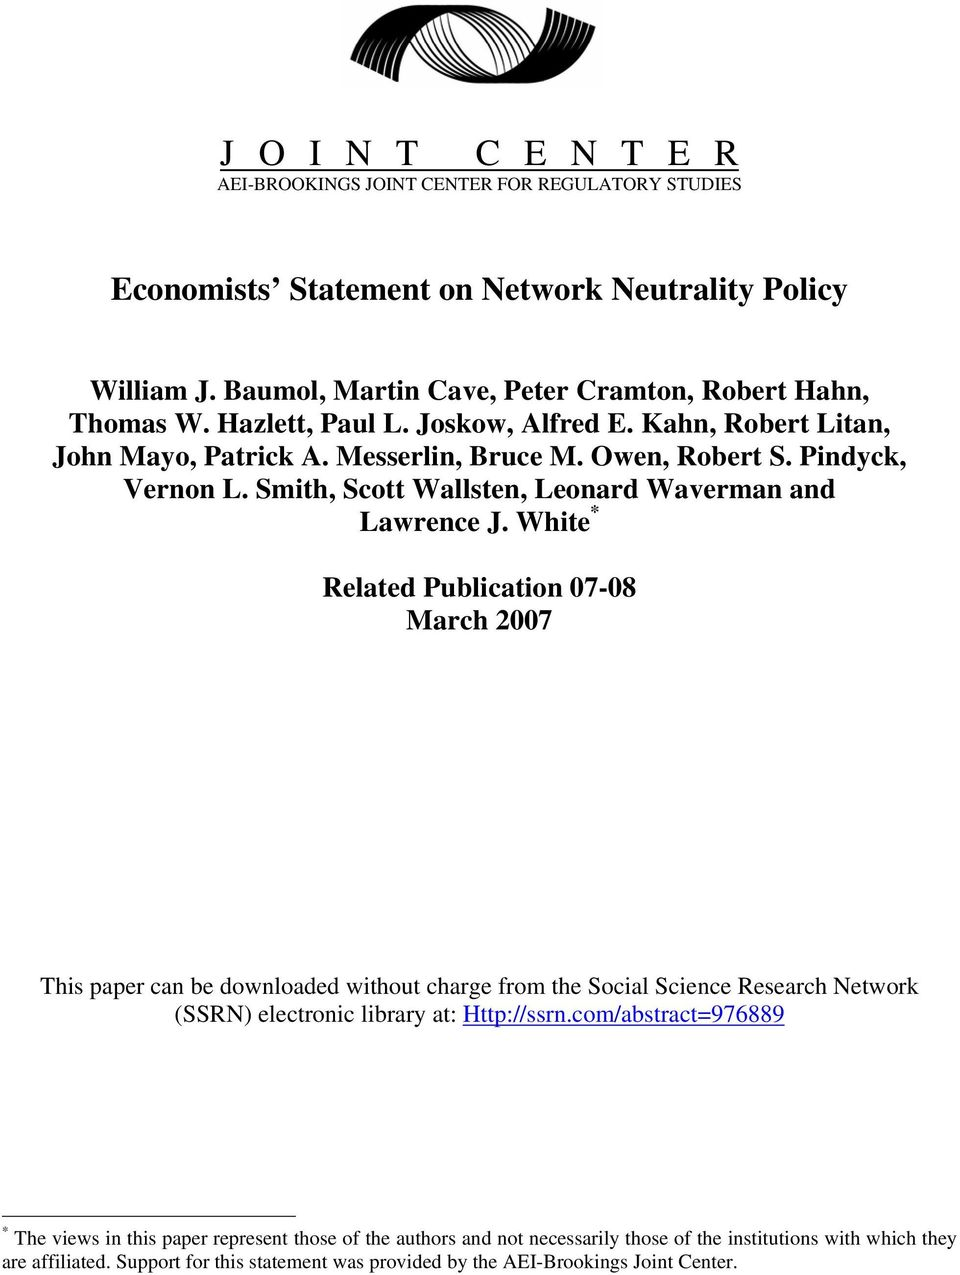 White * Related Publication 07-08 March 2007 This paper can be downloaded without charge from the Social Science Research Network (SSRN) electronic library at: Http://ssrn.